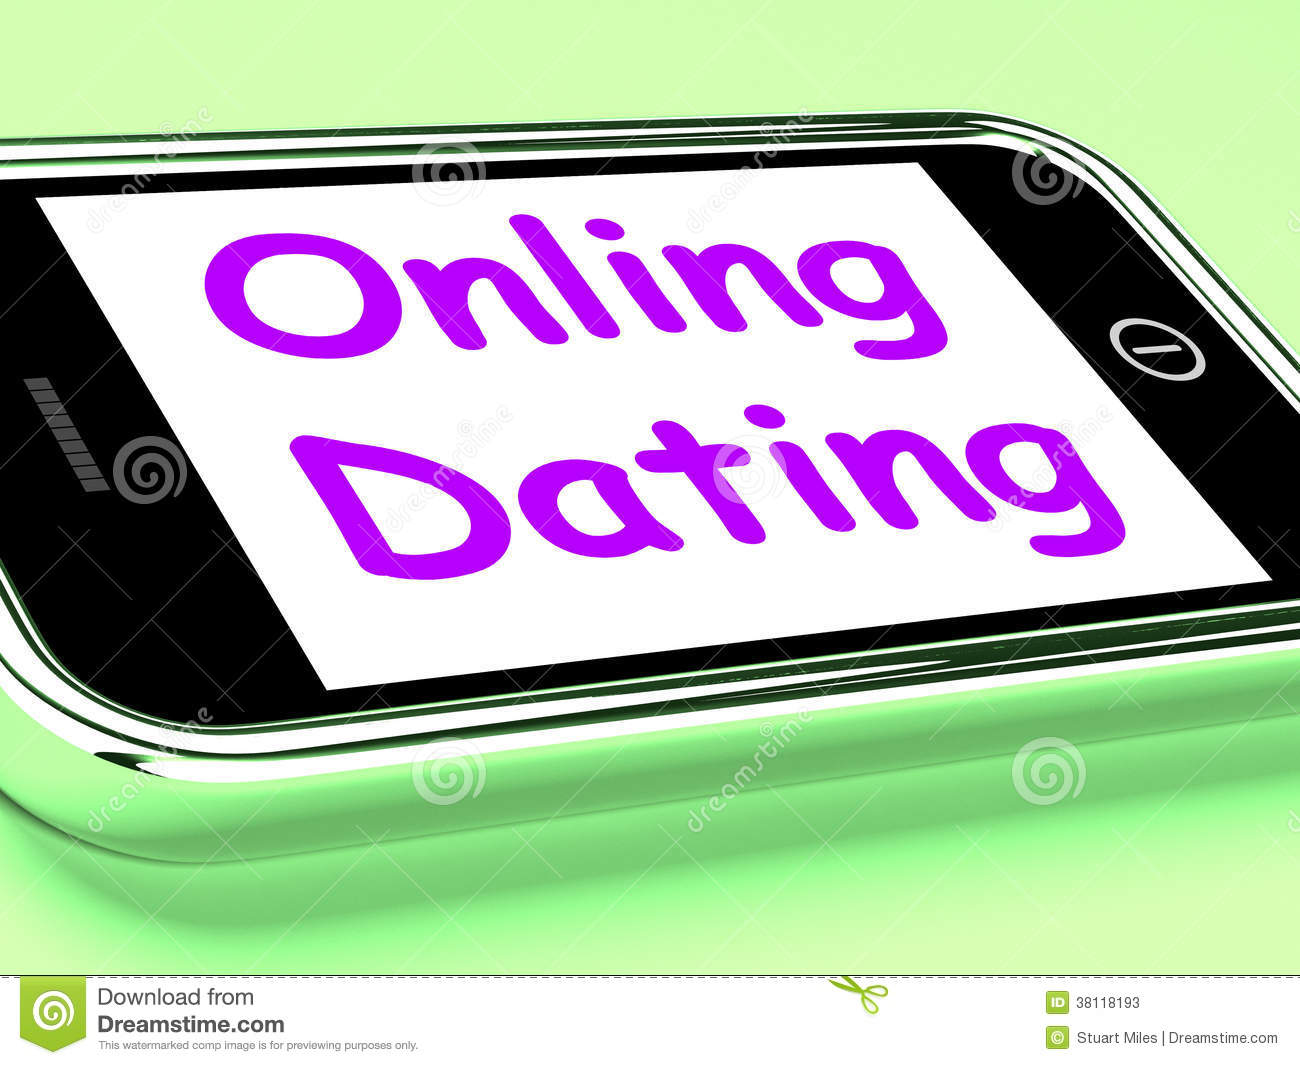 web dating Free online dating sites 16,091 likes 33 talking about this our website   join the free dating support community and get.